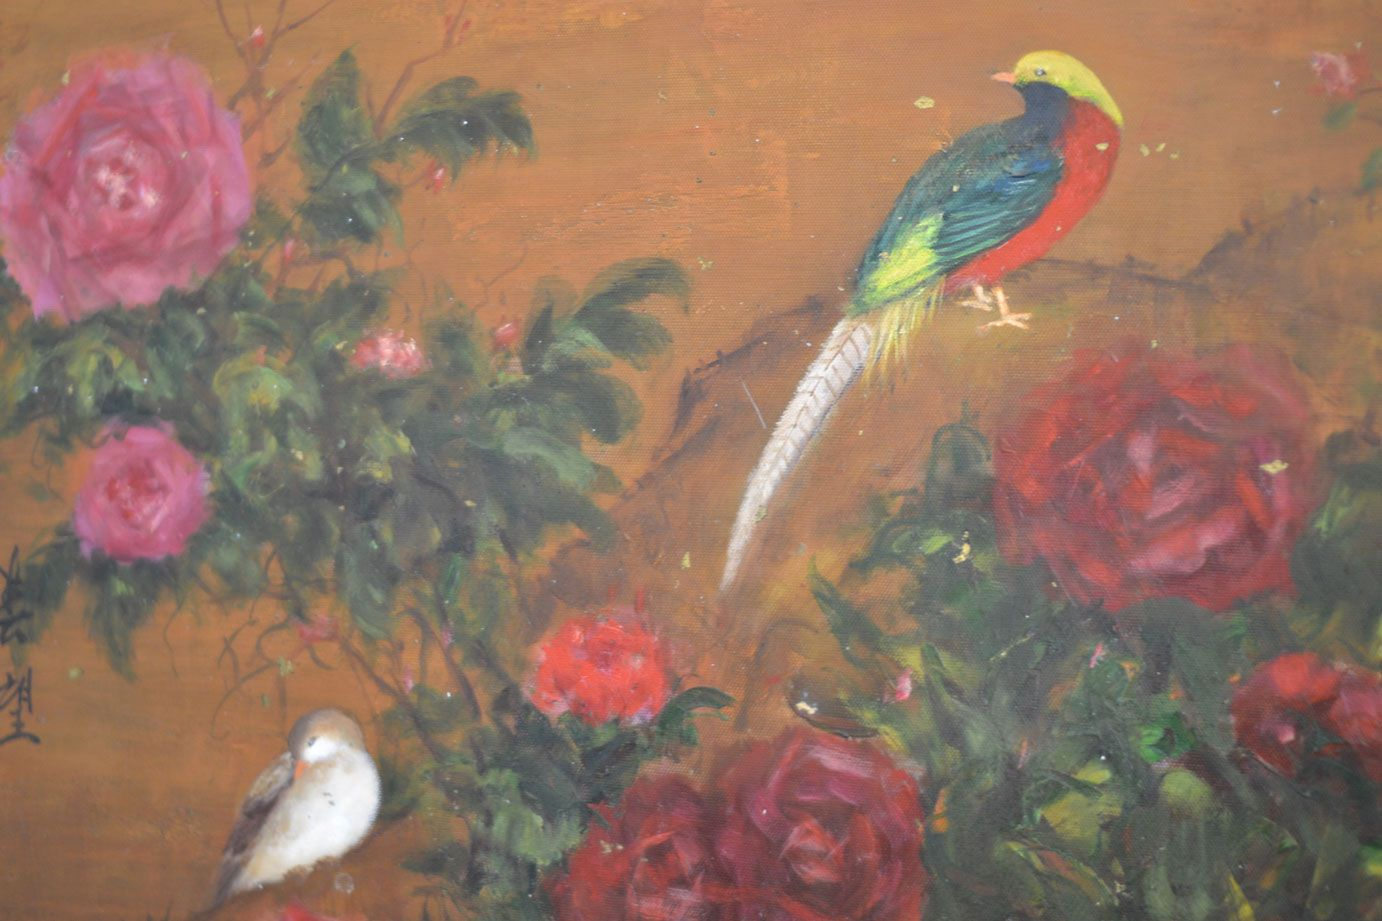 Artwork.  Original oil painting of birds in red.  Robin's Nest Interiors - Louisville Interior Design & Home Accessories Boutique located in the heart of Middletown, KY.